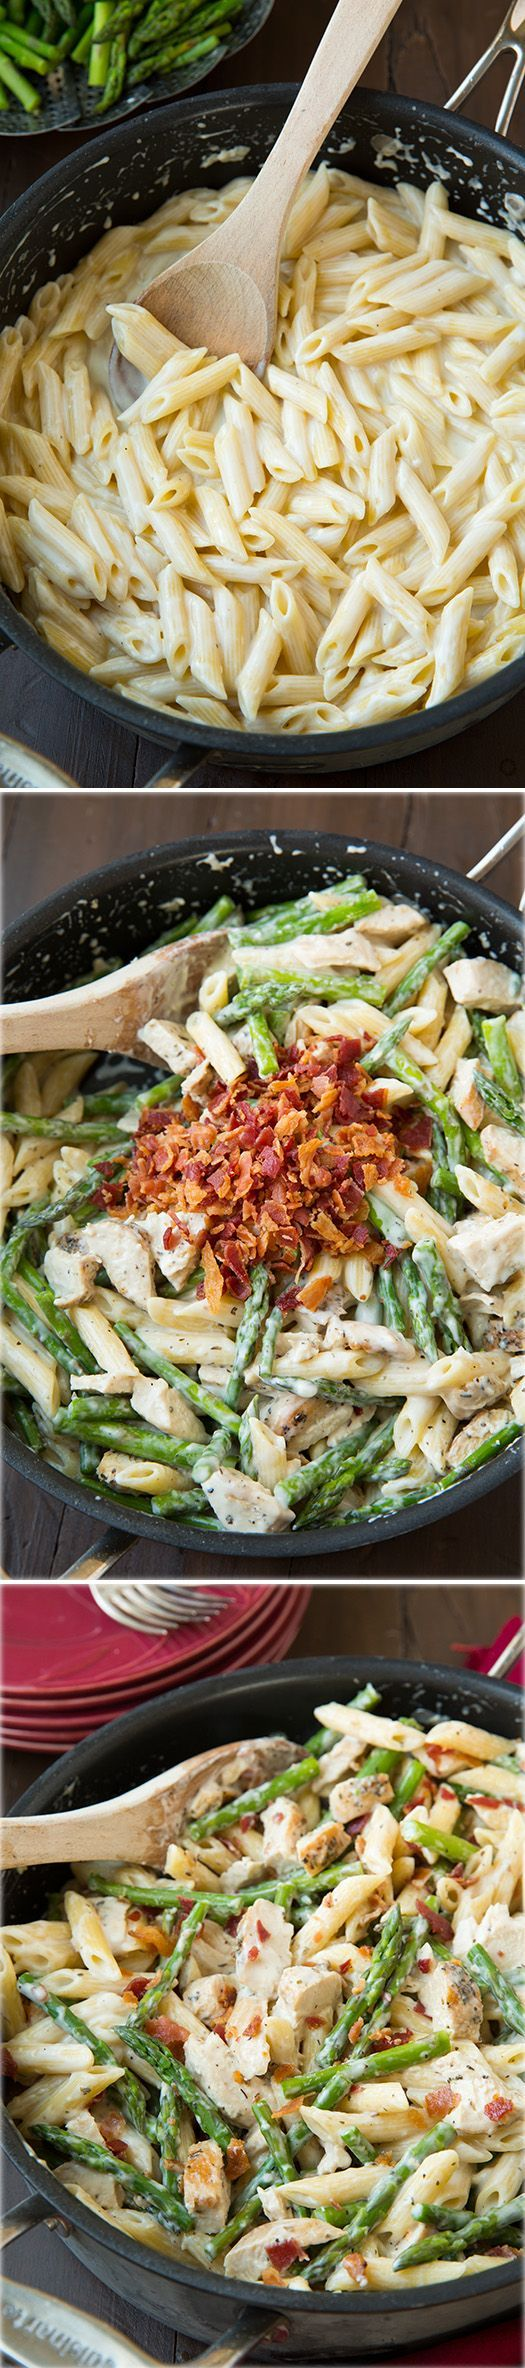 Creamy Chicken and Asparagus Pasta | Foodqik